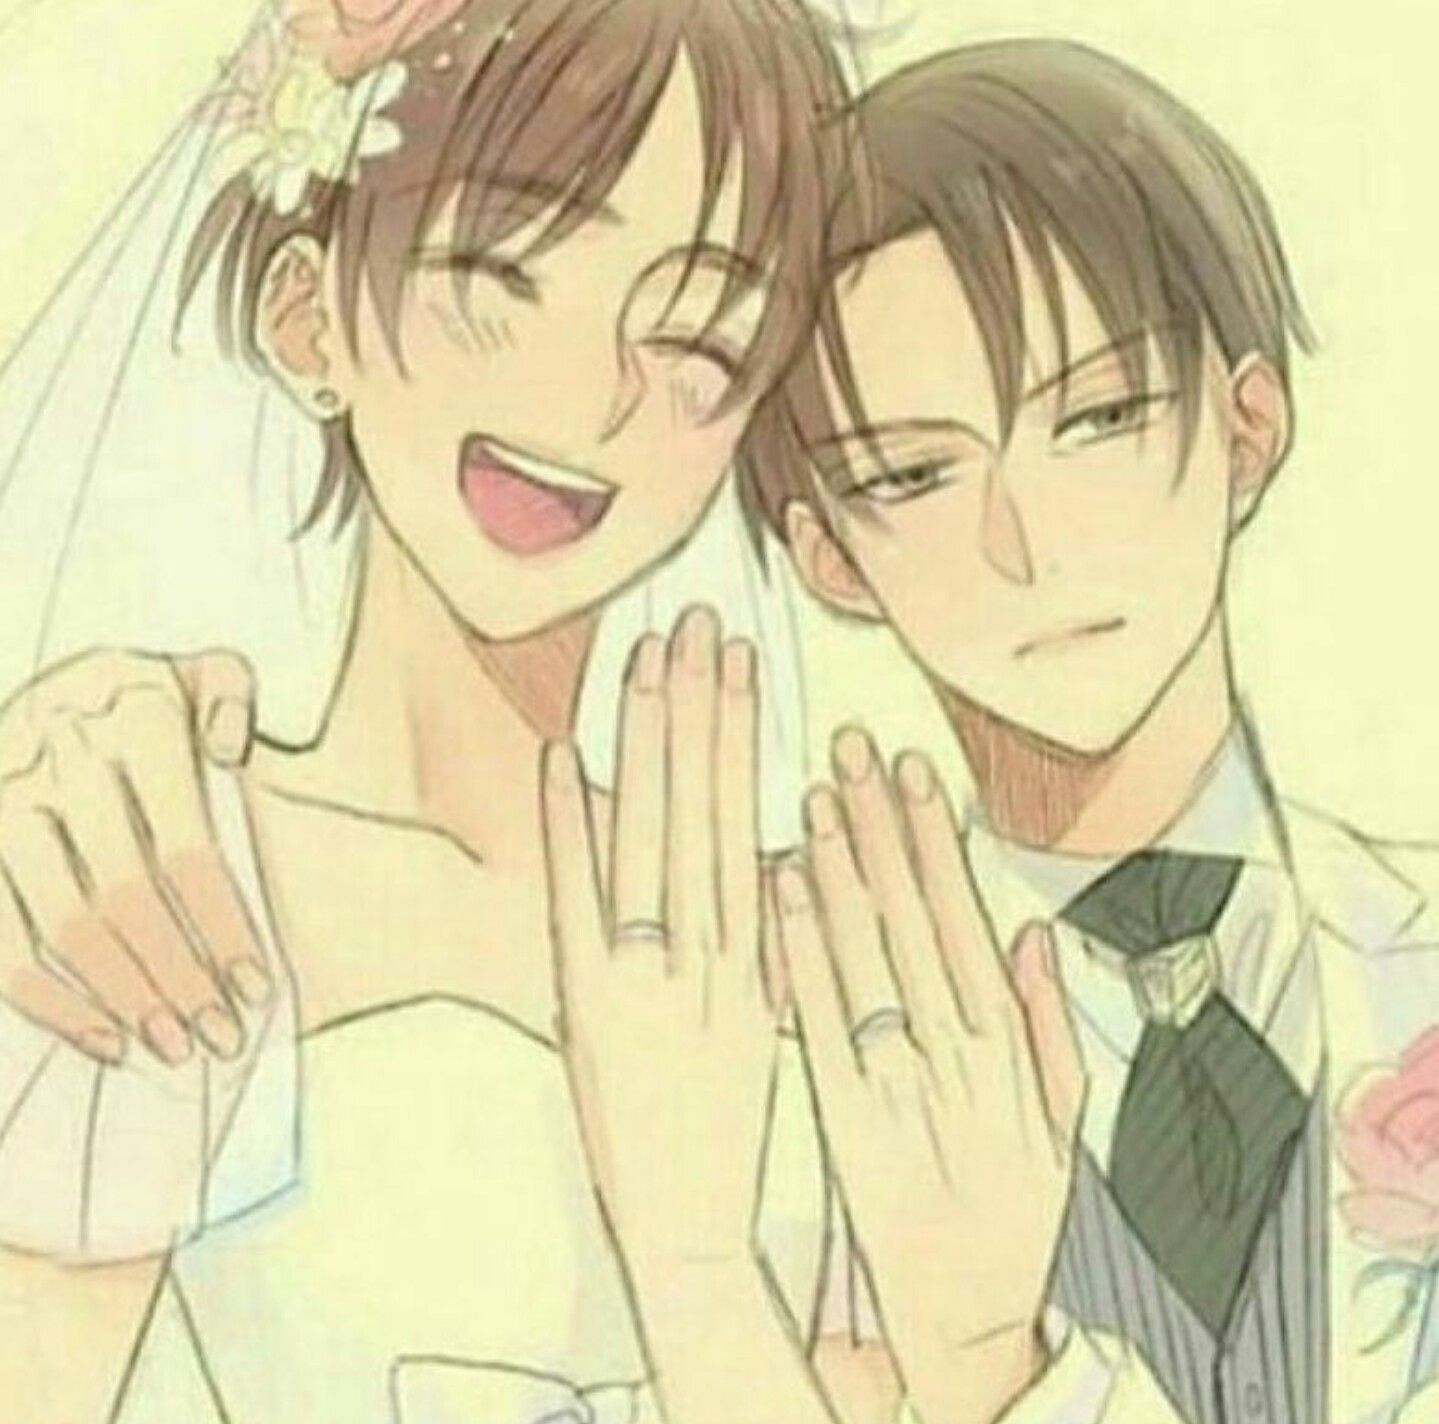 Levi x eren | wedding | Attack on Titan | Ereri, Attack on titan